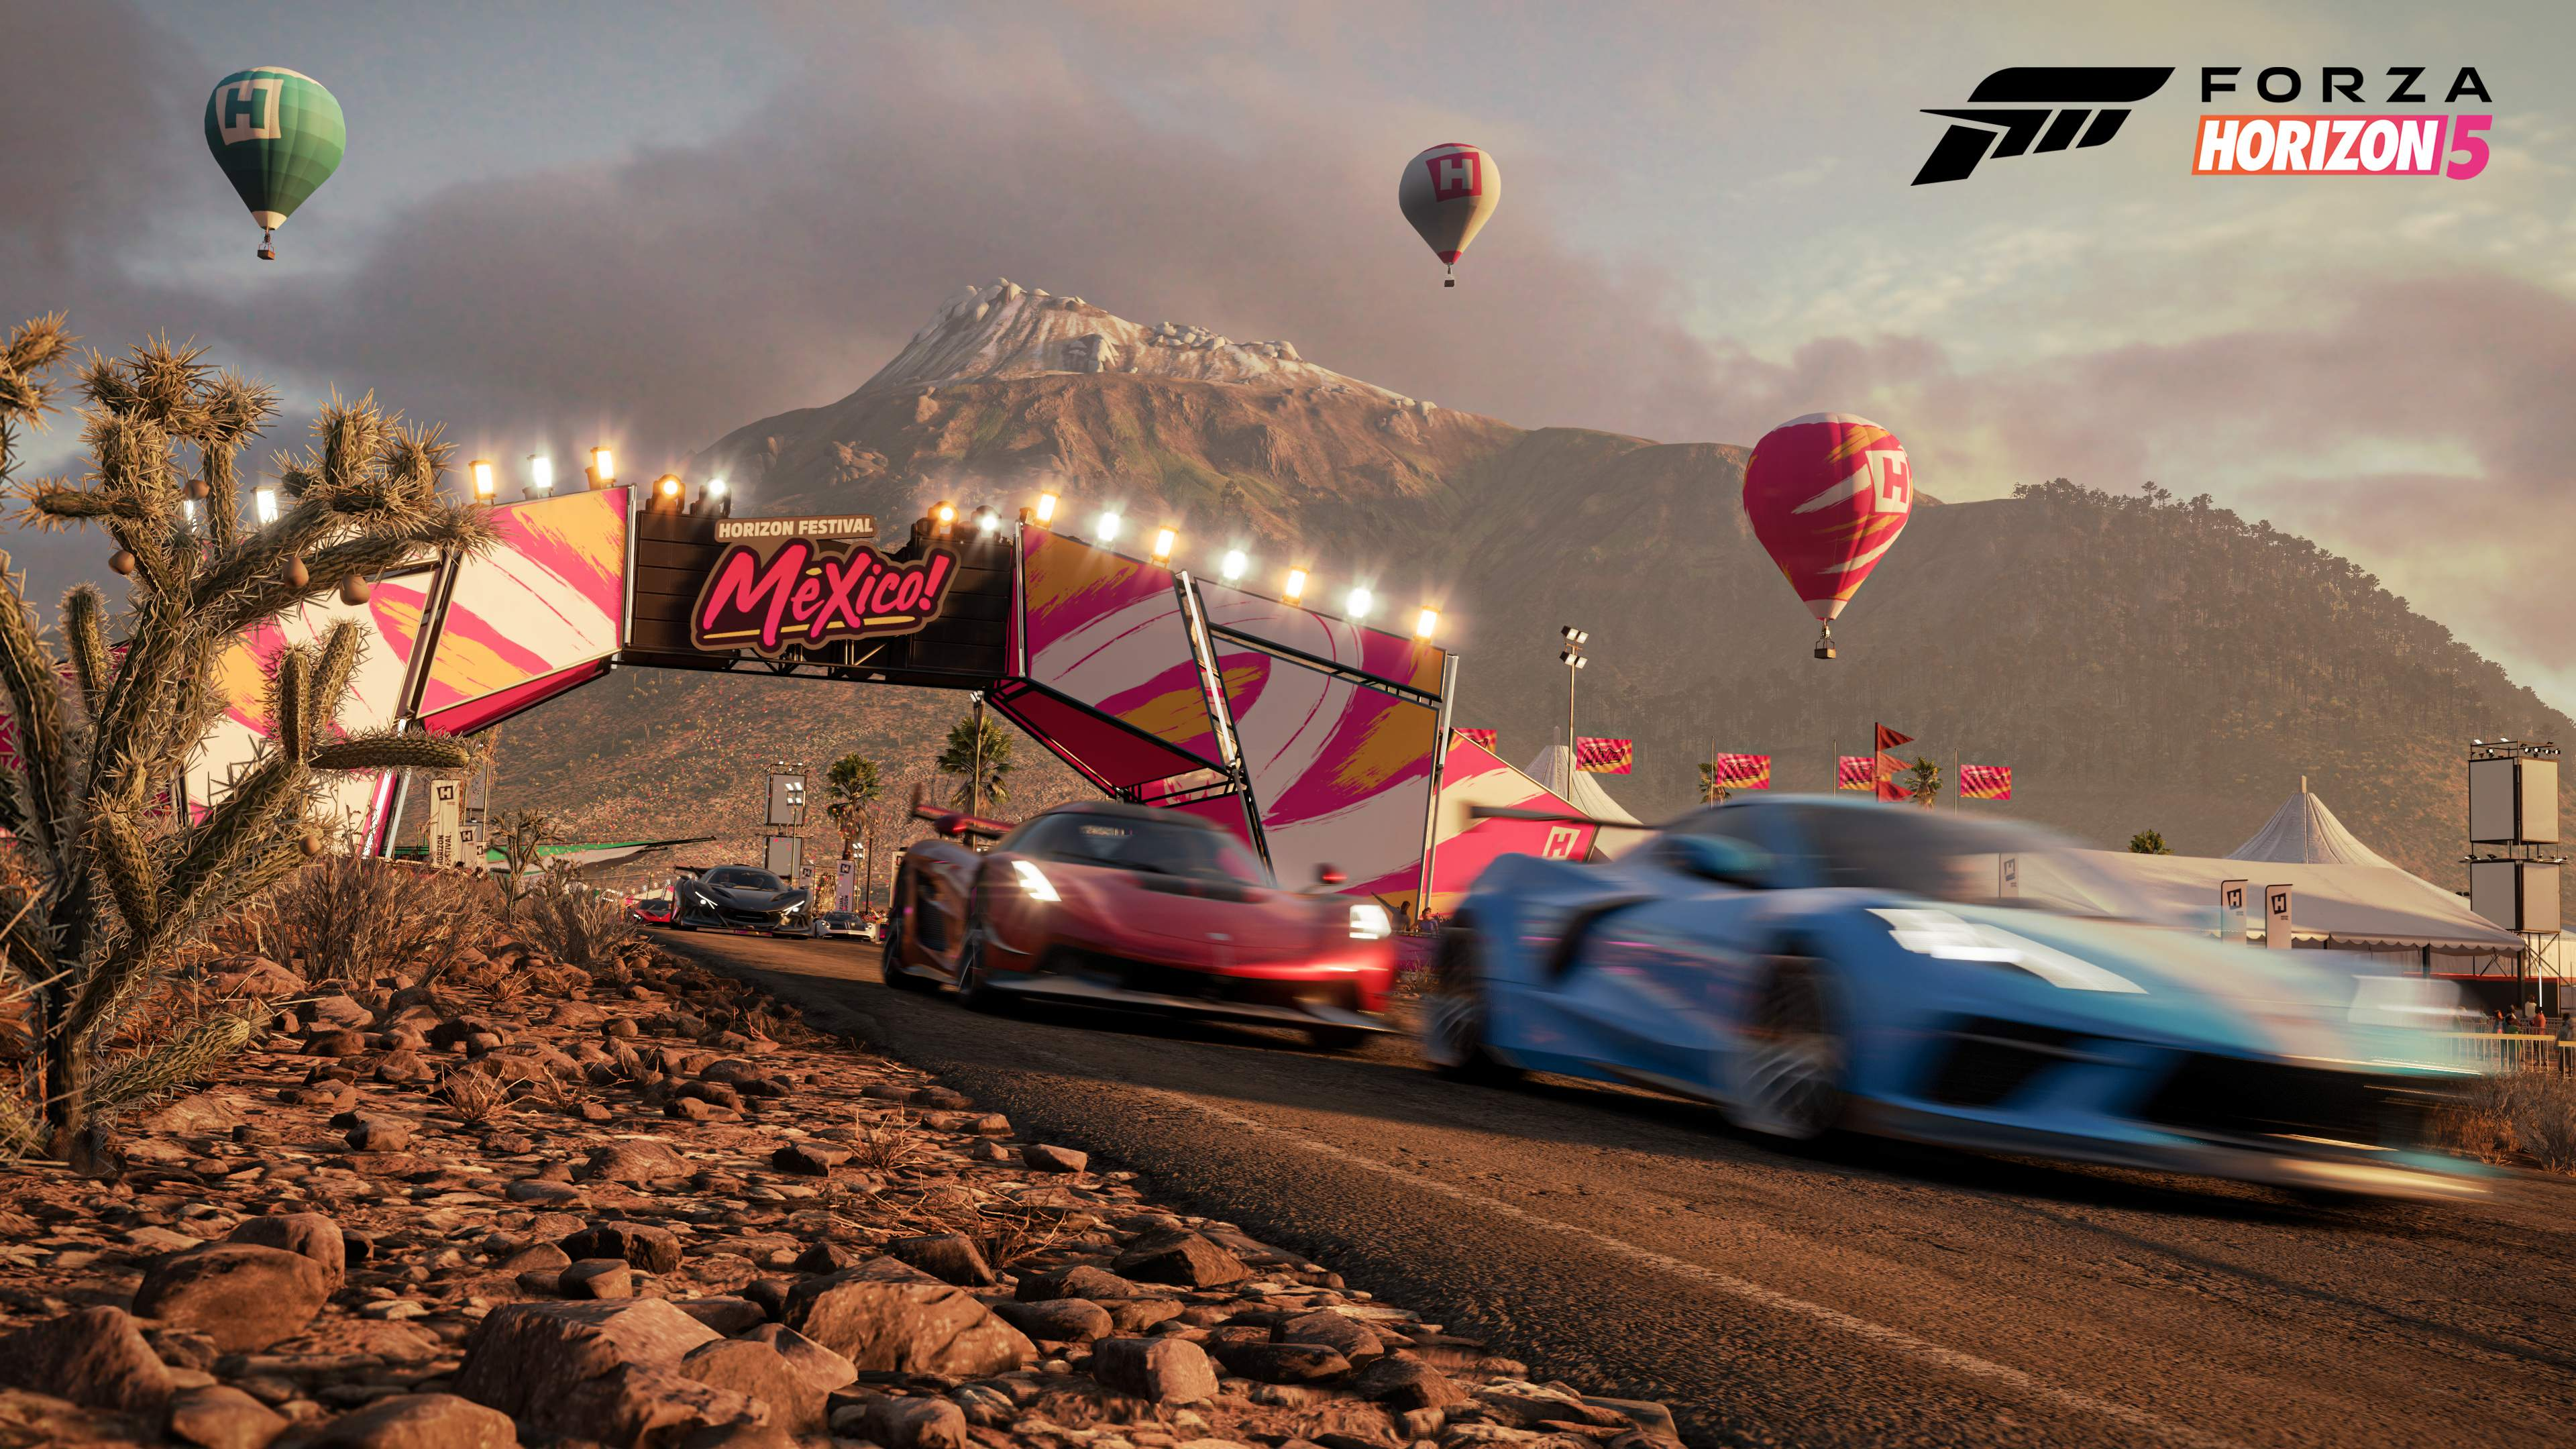 Cars race down a highway as festival lights and hot air balloons hang in the distance behind them